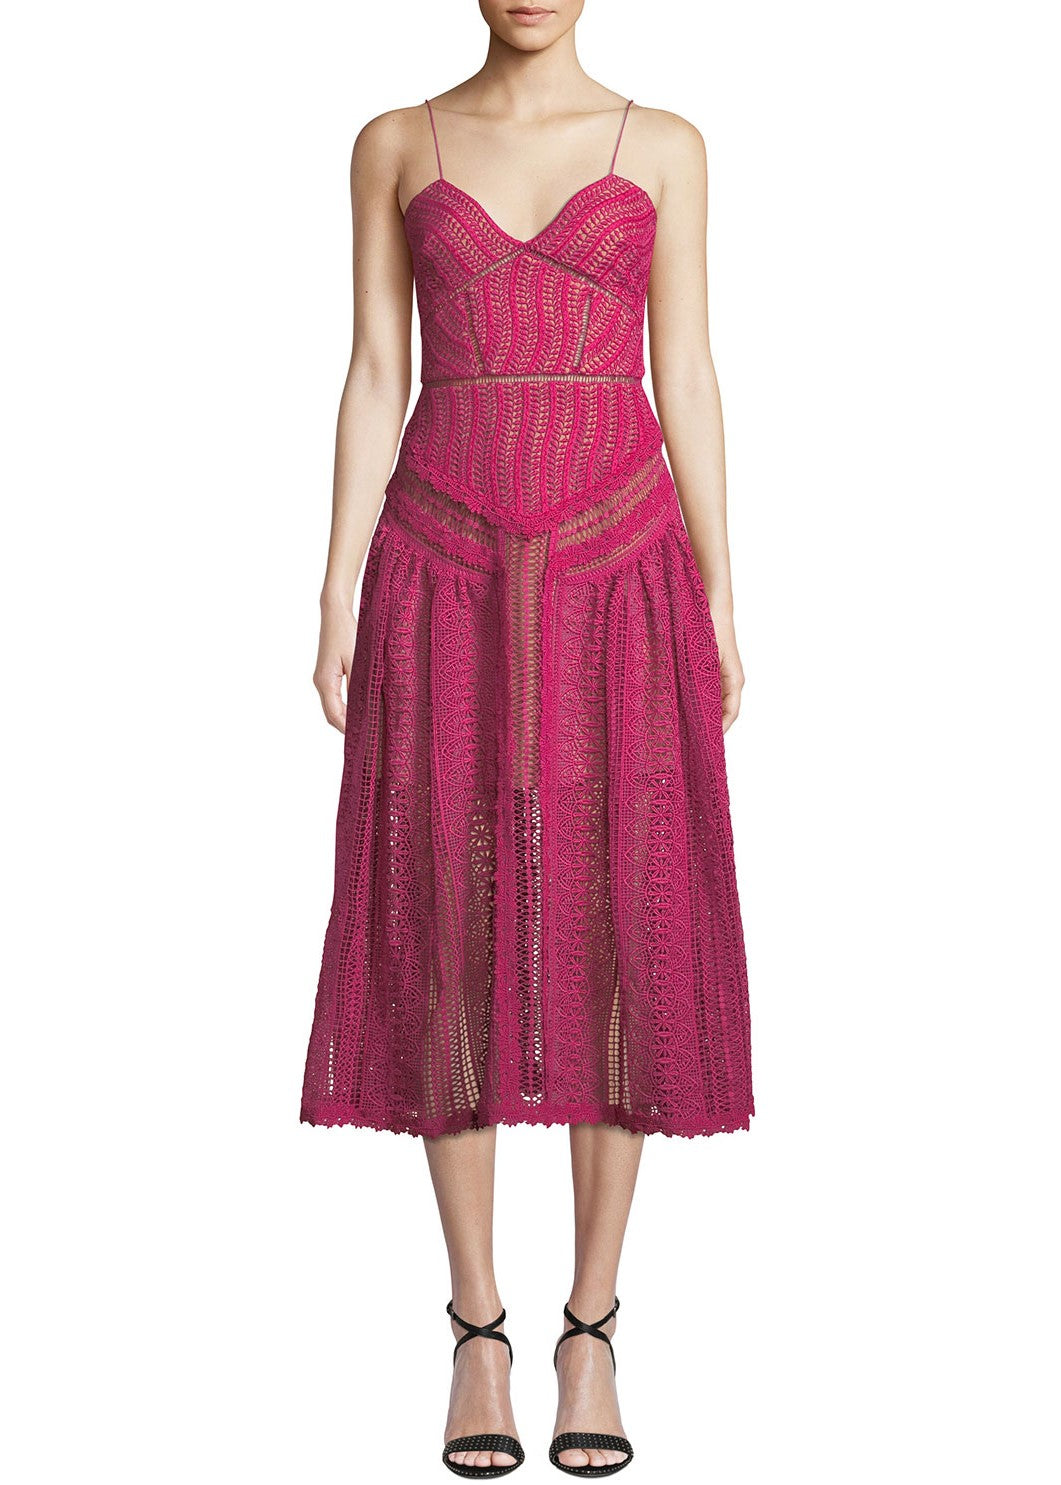 Self Portrait FUCHSIA SPIRAL LACE PANEL DRESS